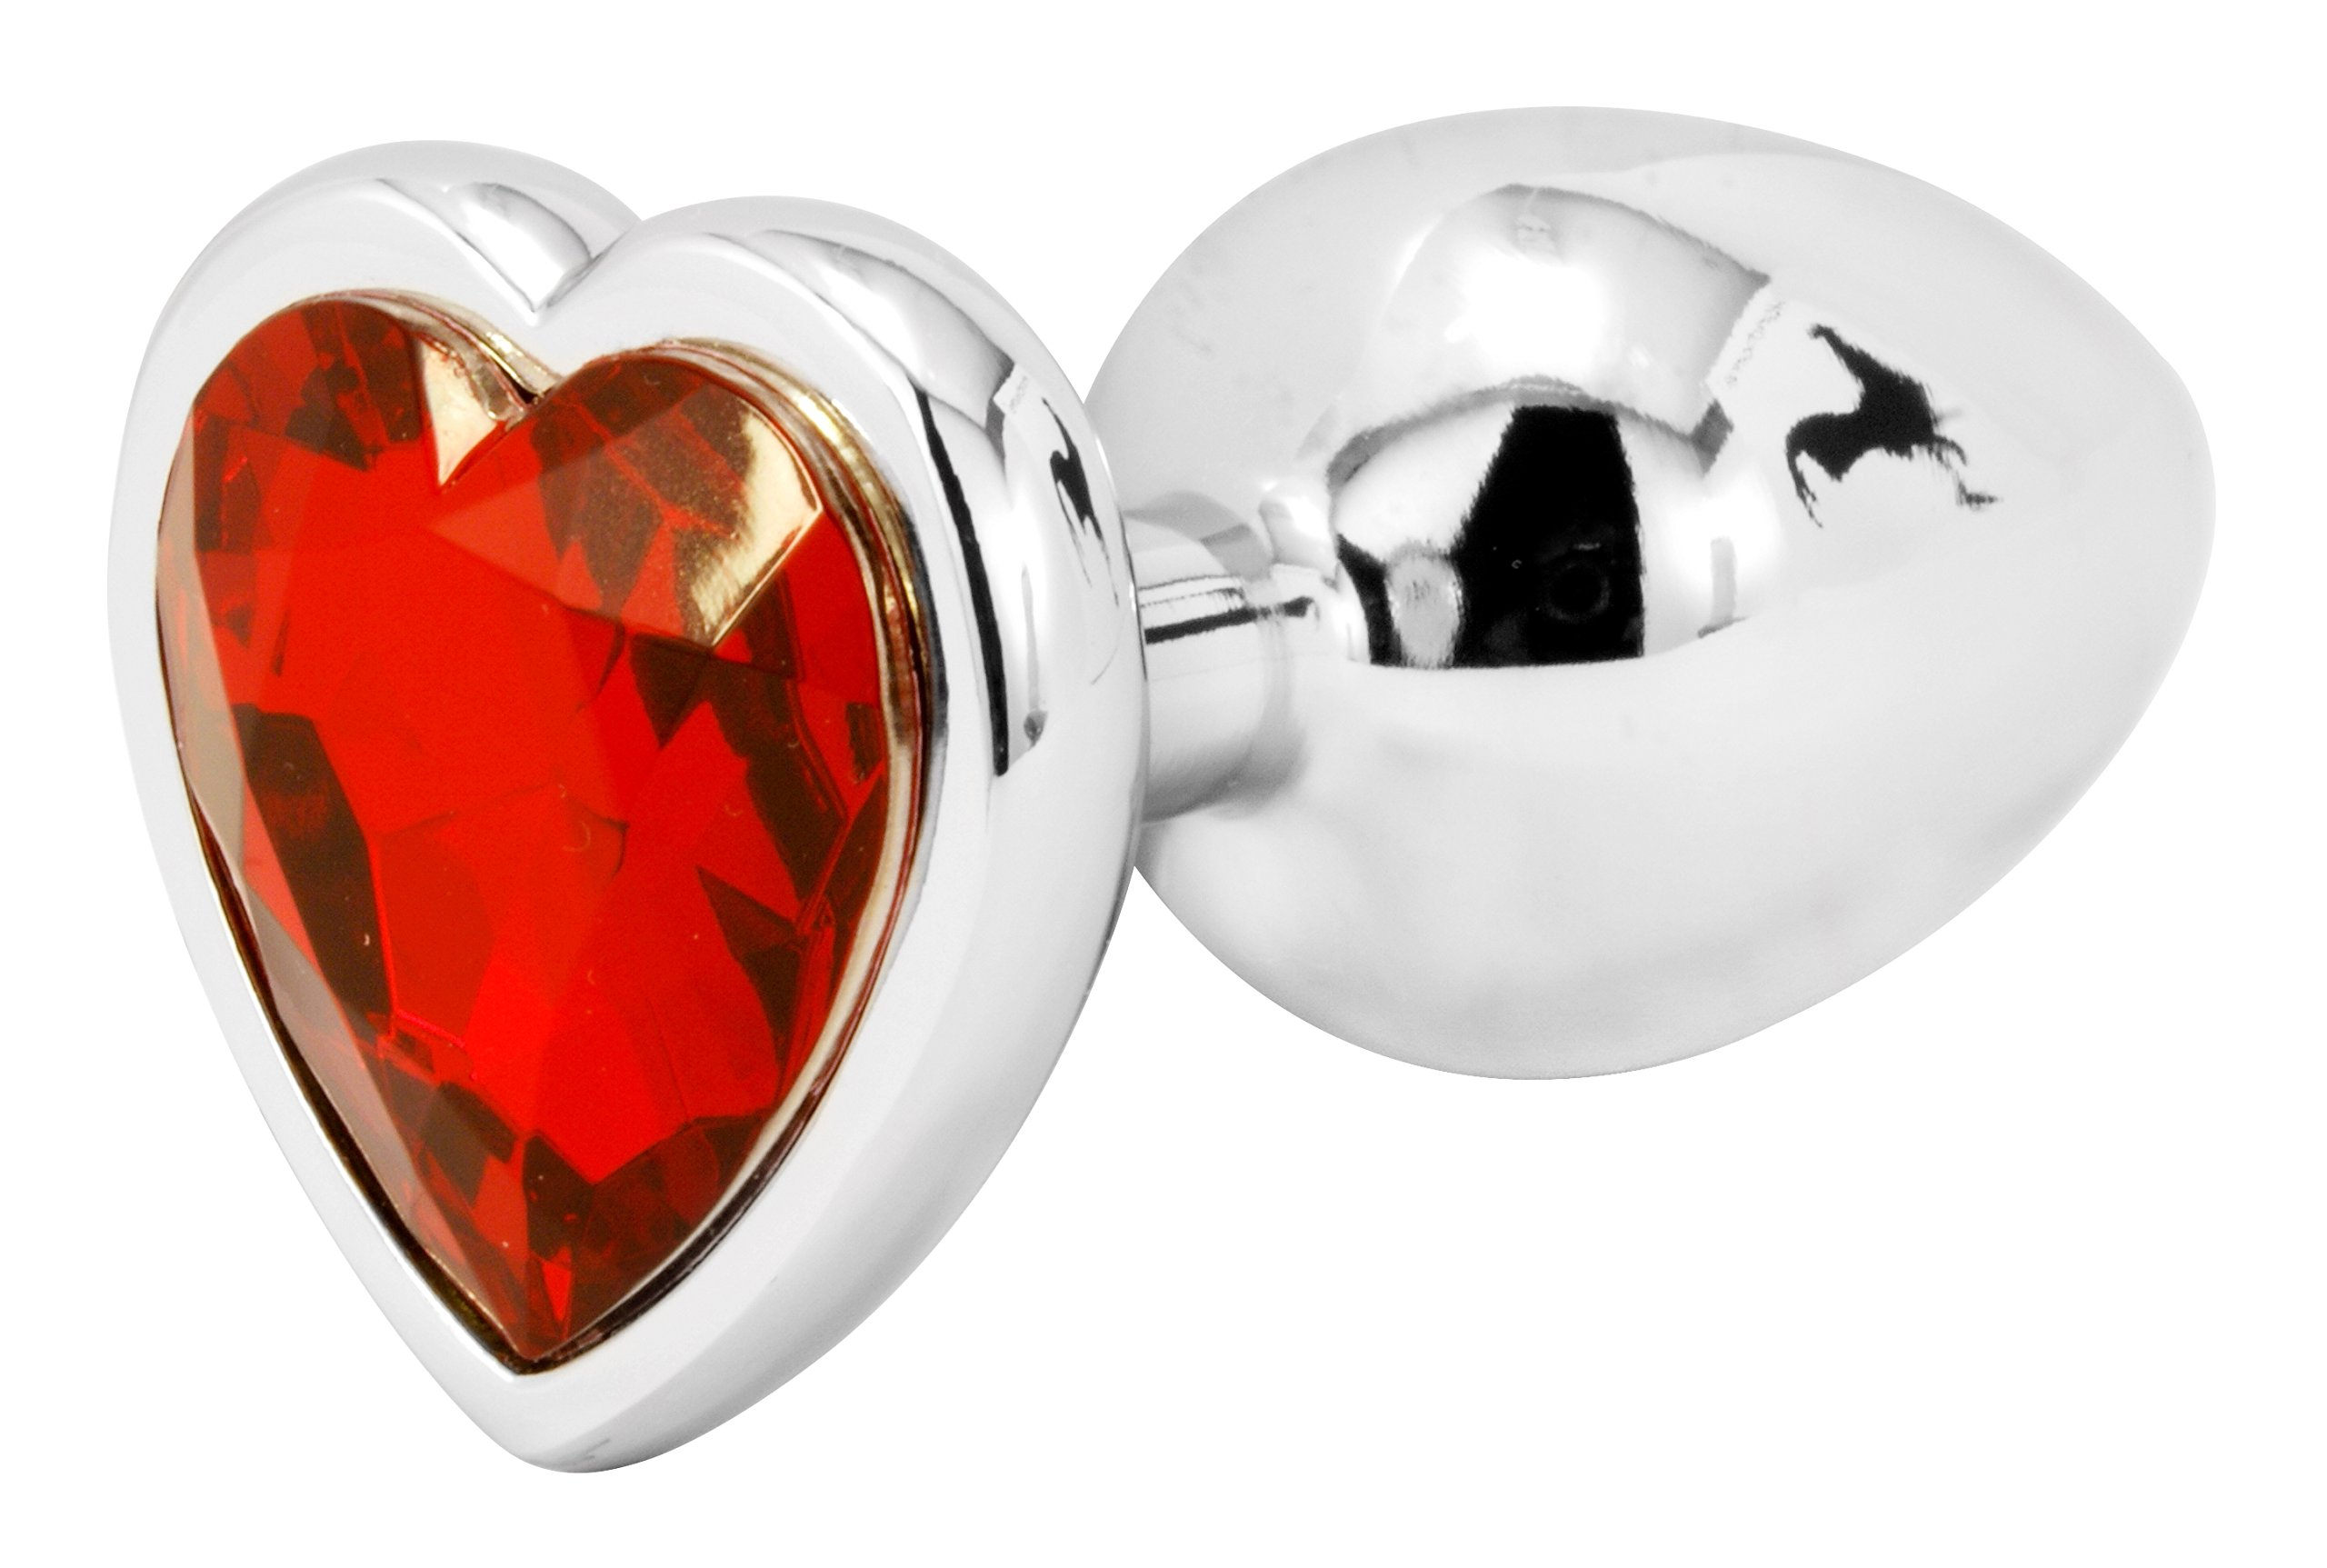 Handsome Cock Small Red Heart Jewelled Butt Plug